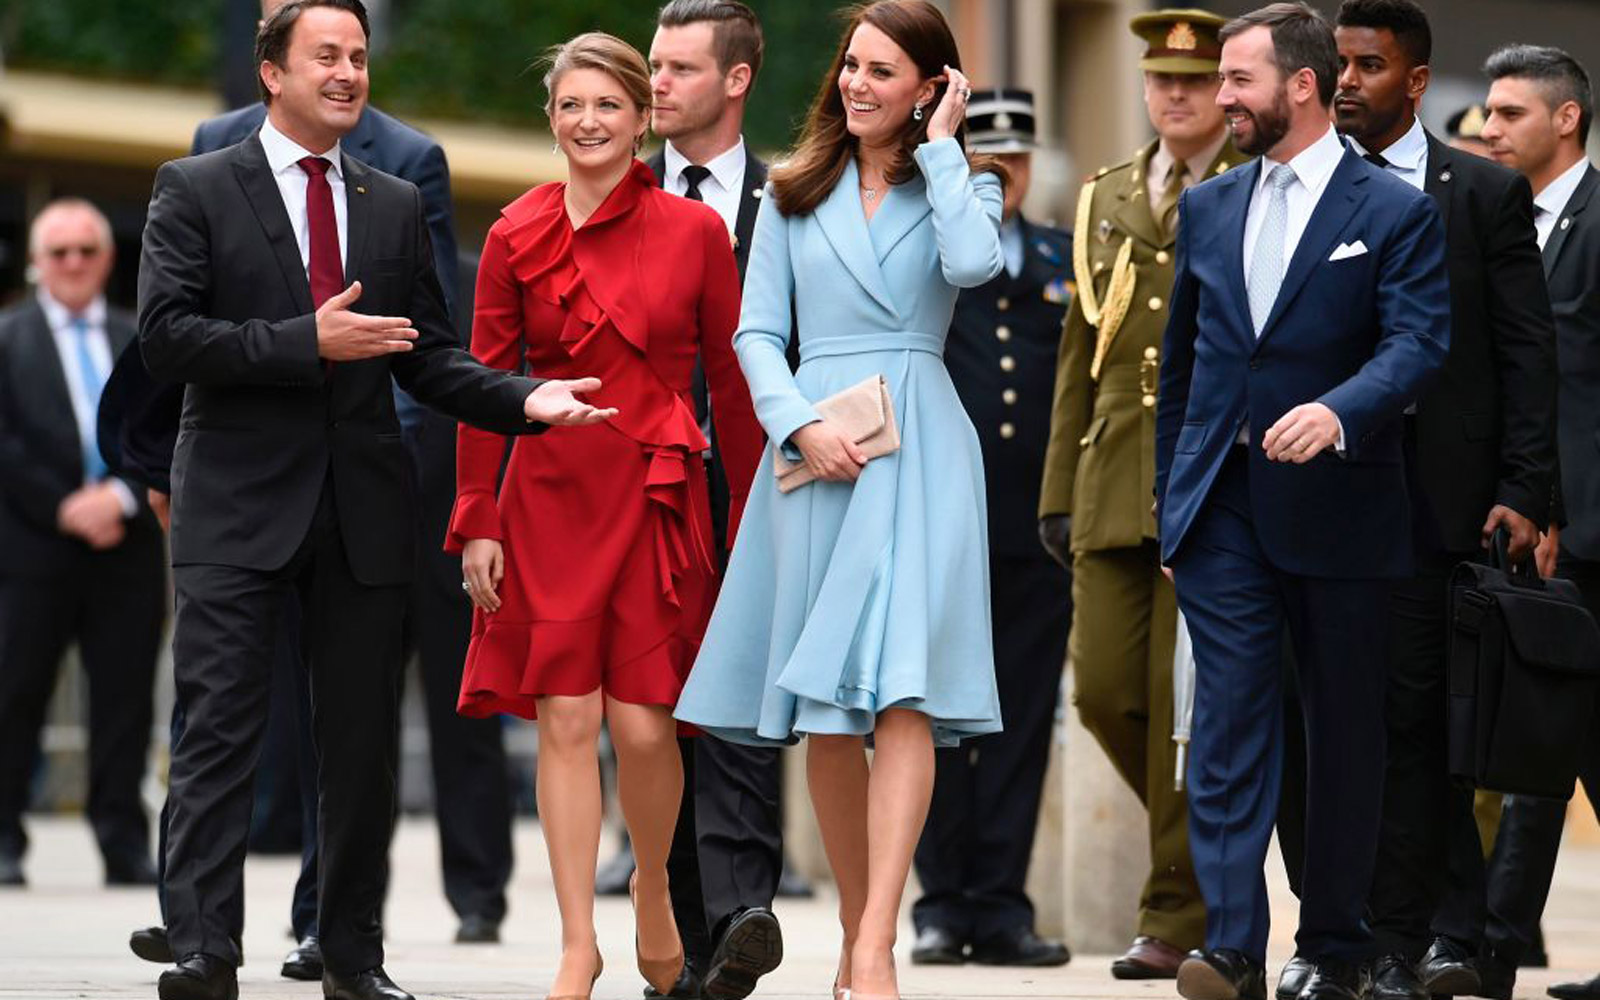 Britain's Catherine, Duchess of Cambridge (C), Prince Guillaume (R), Hereditary Grand Duke of Luxembourg, and Princess Stephanie (2ndL), Hereditary Grand Duchess of Luxembourg, walk as they take part in the Celebration of the 150th anniversary of the 1867